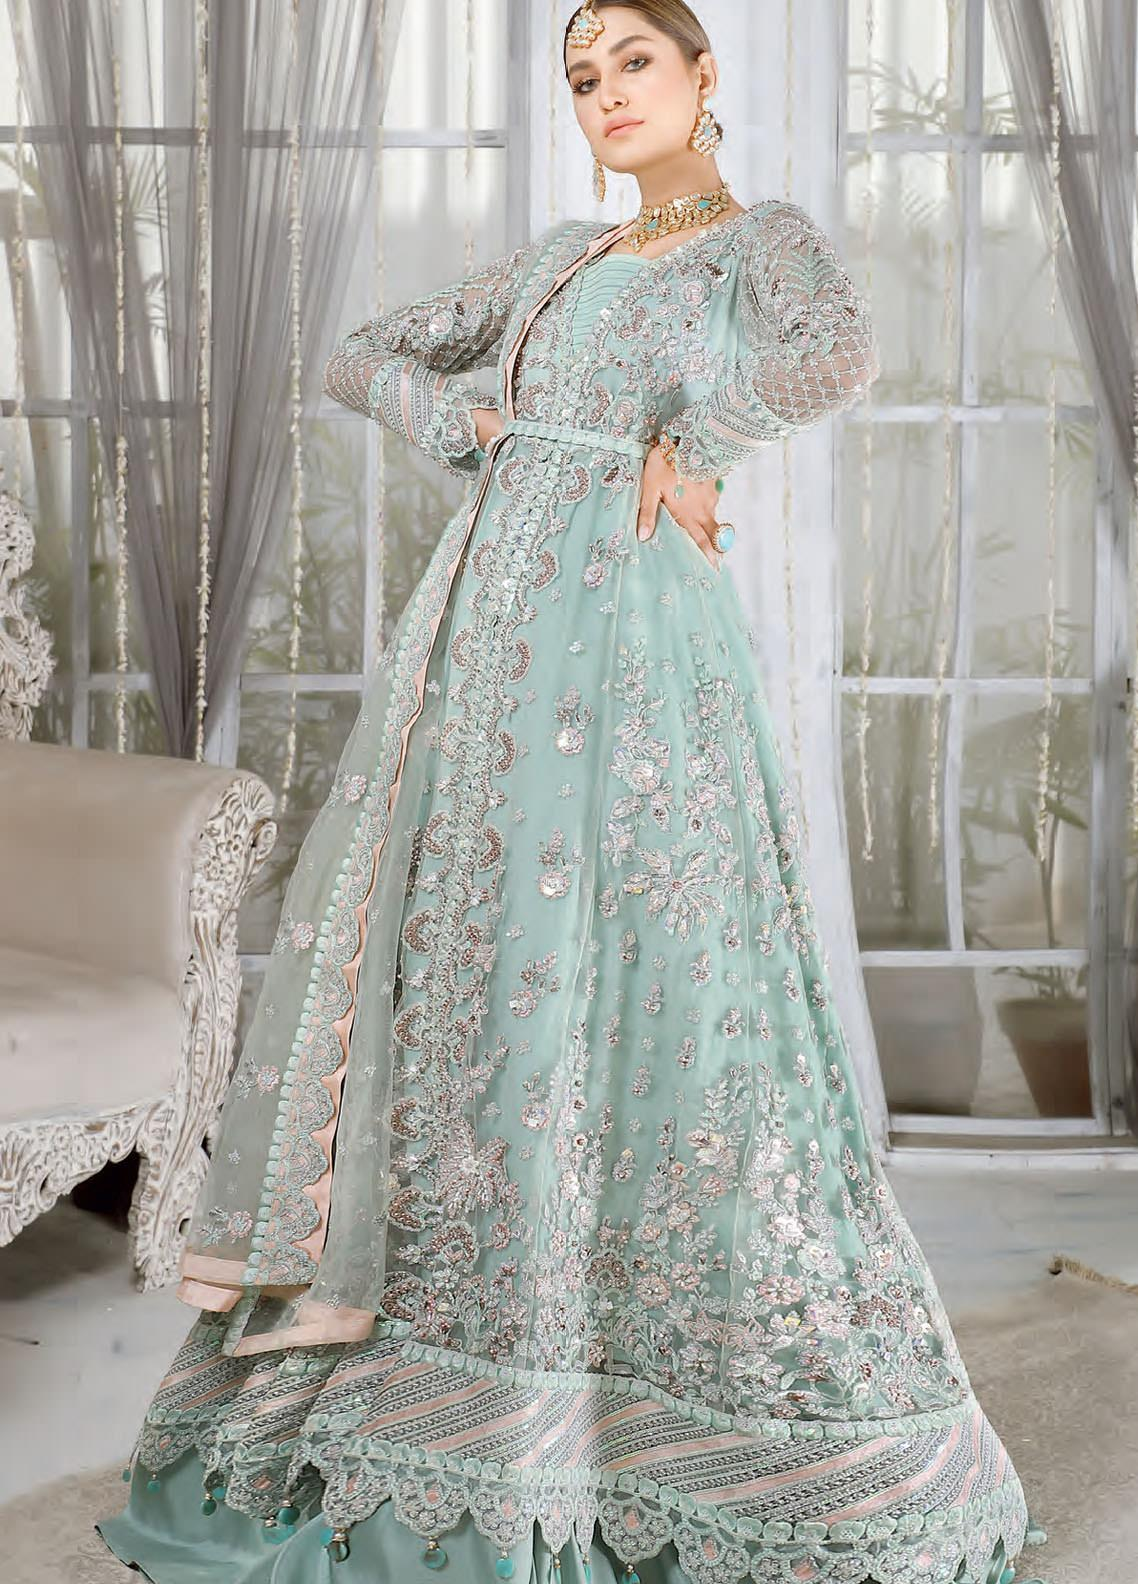 Mahermah by Emaan Adeel Embroidered Net Unstitched 3 Piece Suit EA21M 06 Rang-e-Aab - Bridal Collection